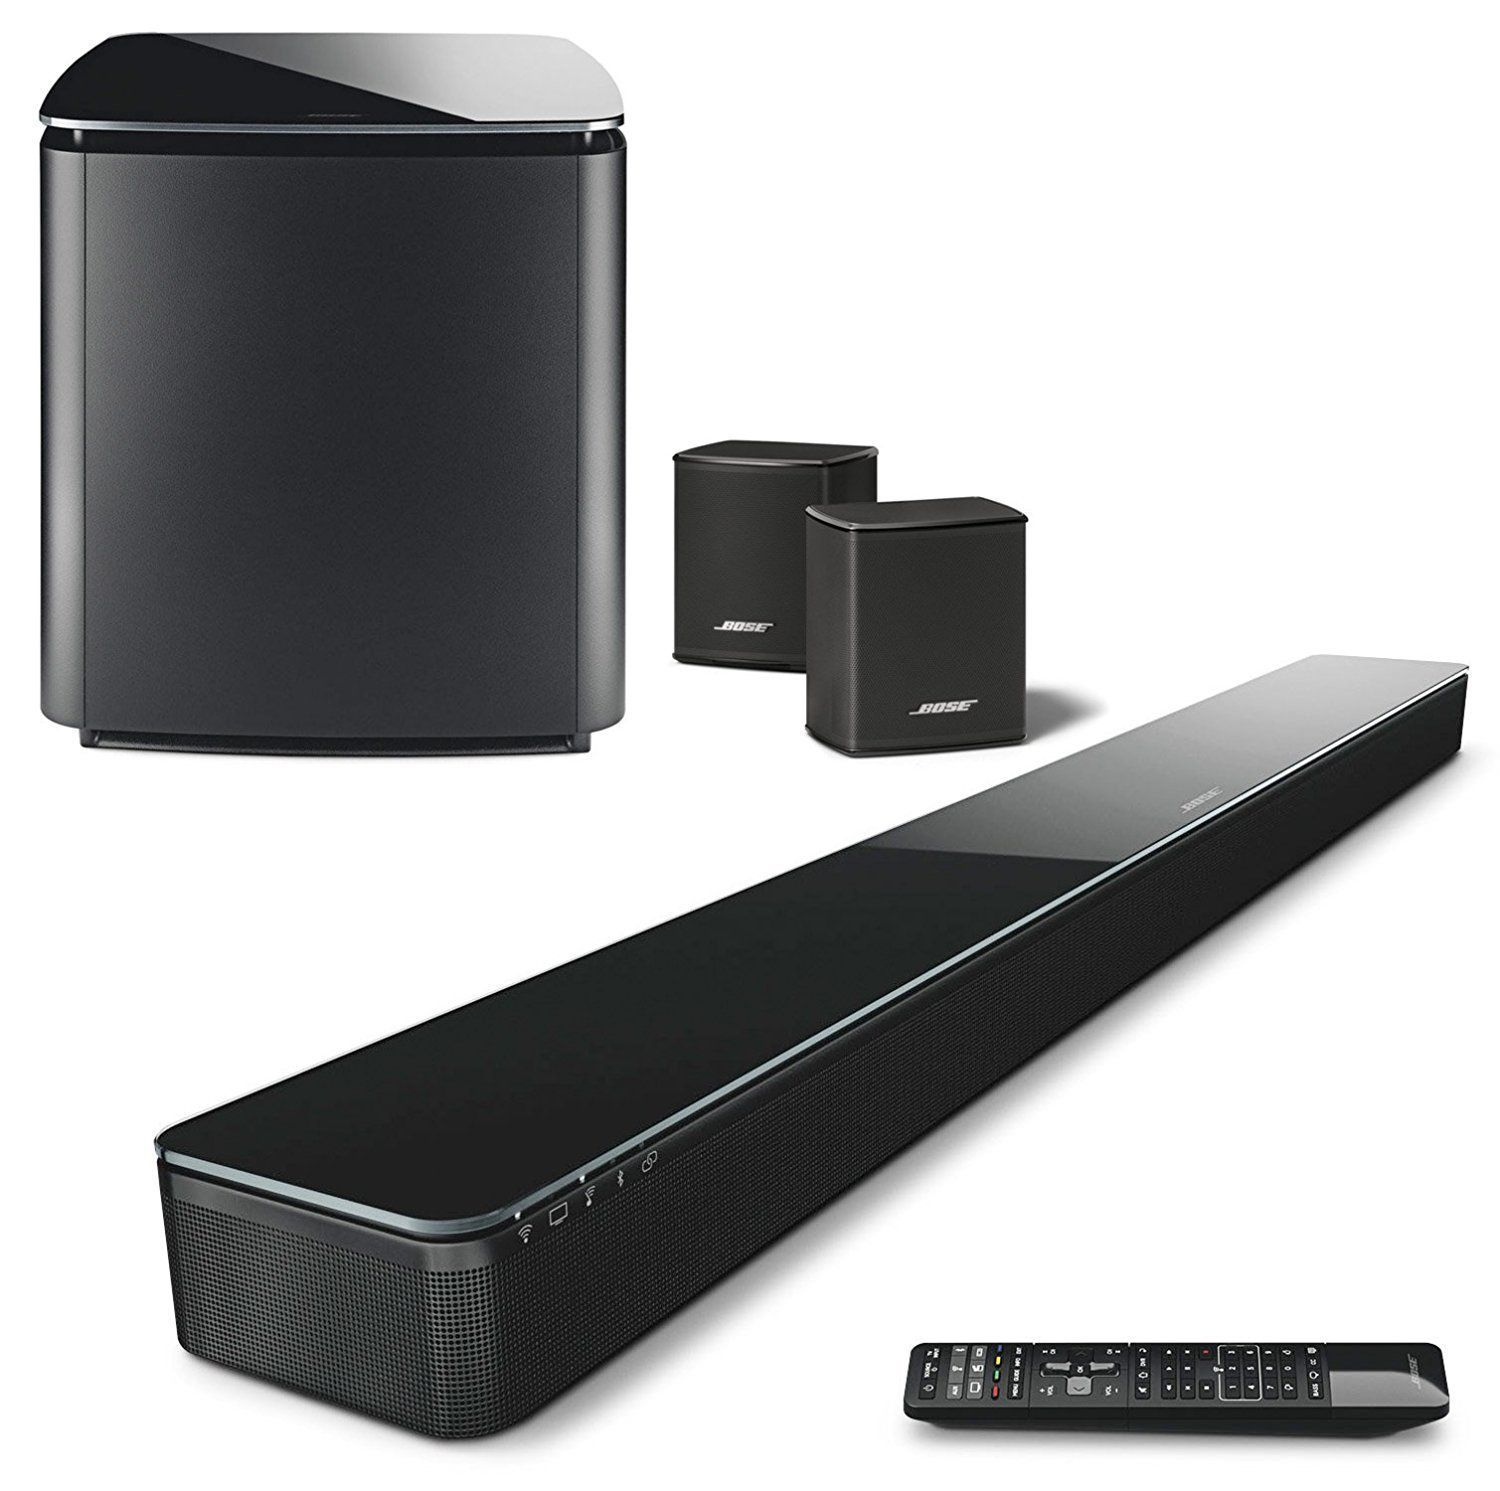 Bose Home Cinema Check Out The [bose 5.1 Home Theater, Soundtouch 300, Acoustimass 300, Virtually Invisible 300] Reviewed On Digimanca… | Sound Bar, Wireless Surround Sound, Speaker